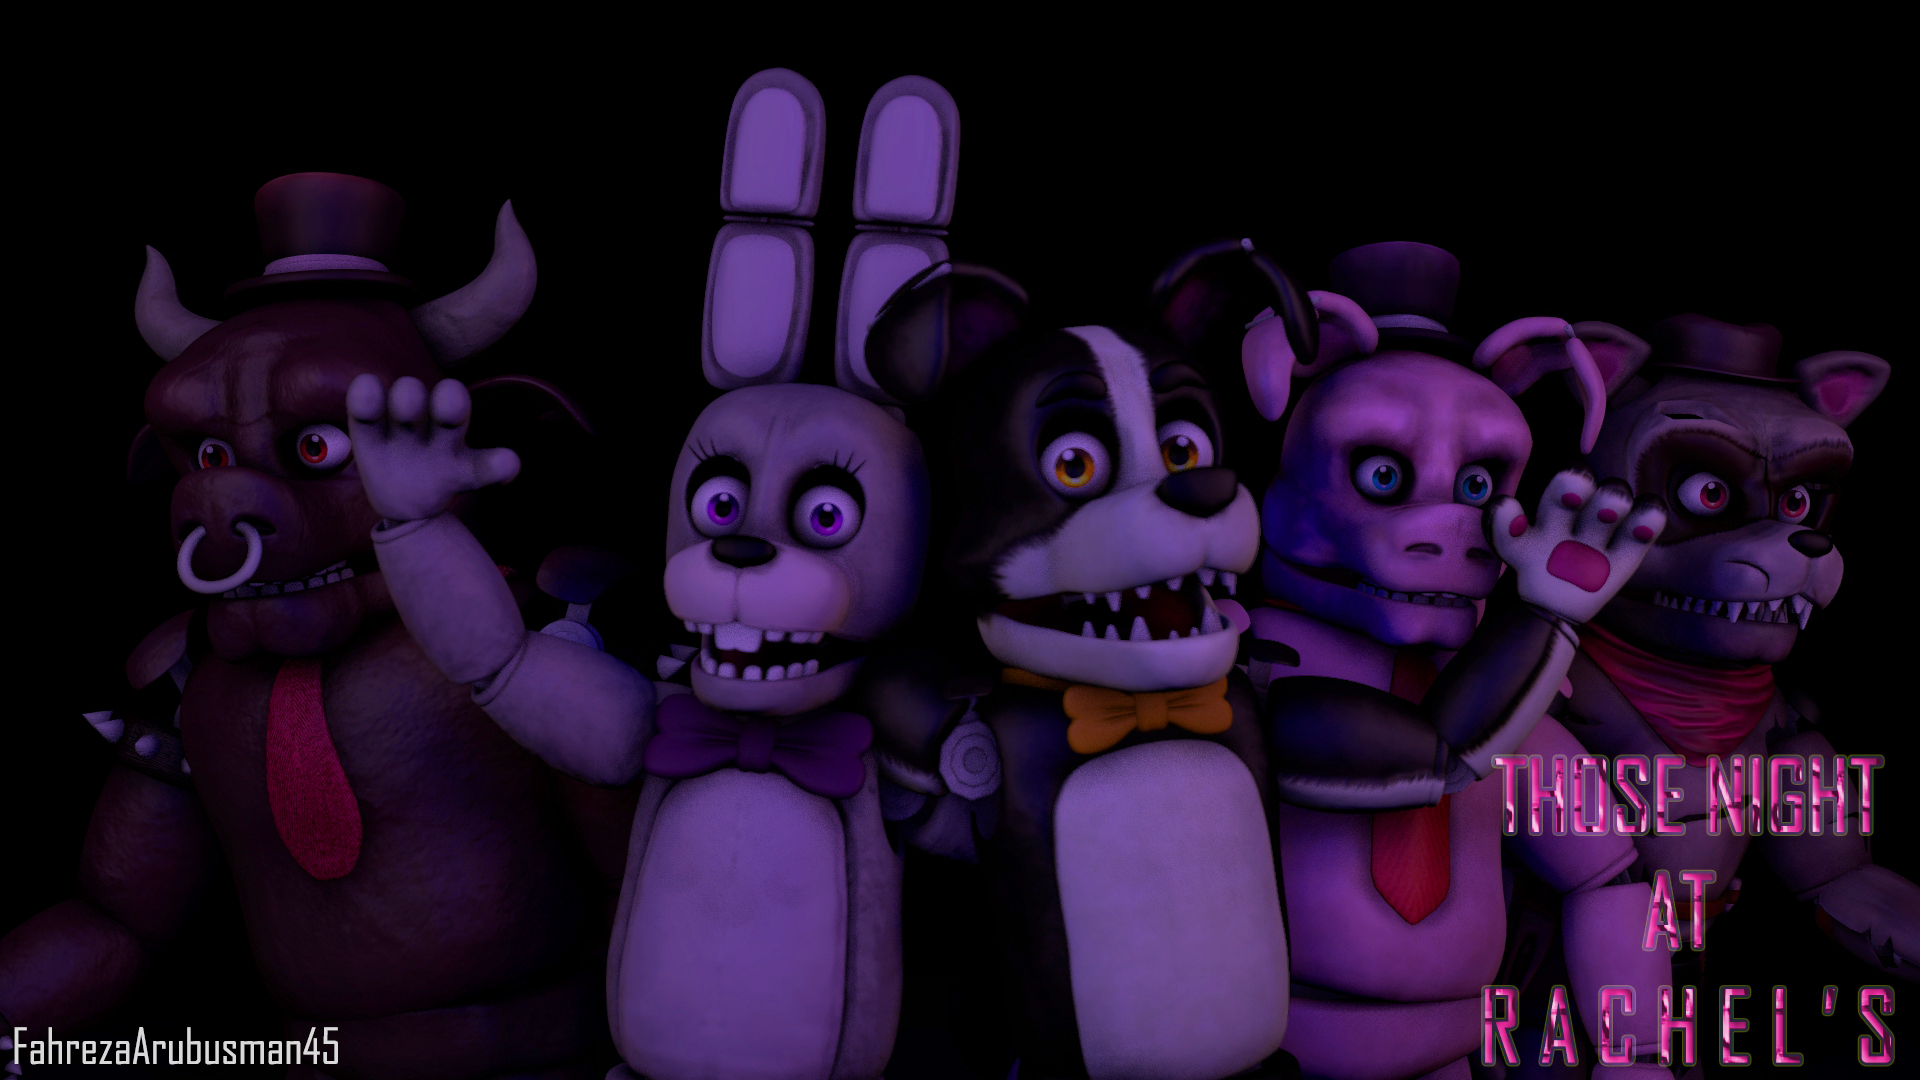 [FNAF/TNAR - SFM] Those Night at Rachel's by ...